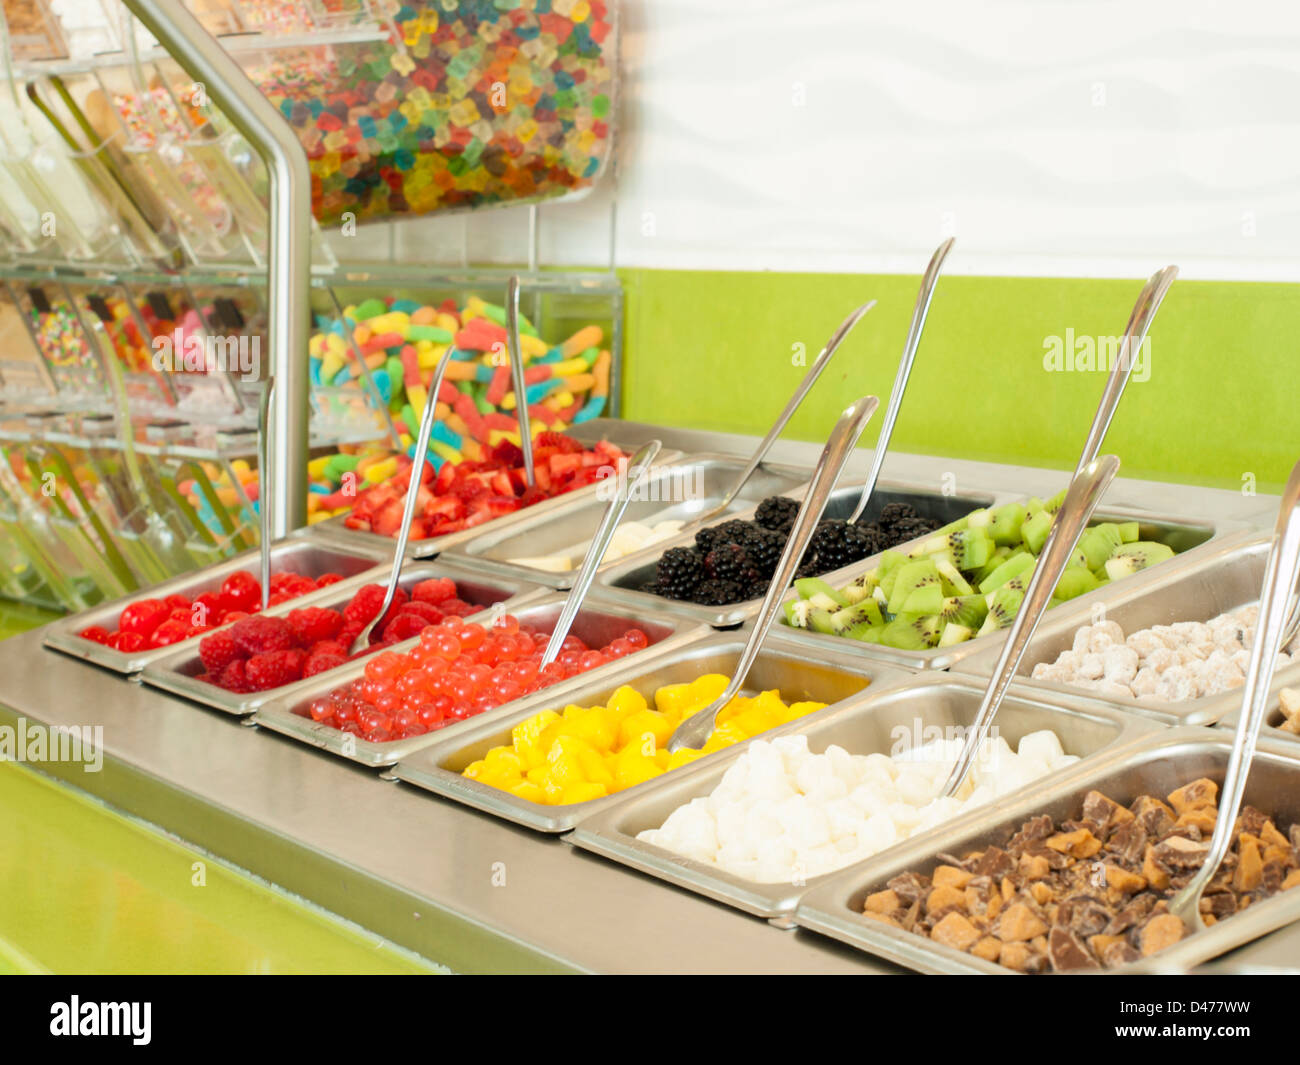 Superbe  Frozen Yogurt Toppings Bar. Yogurt Toppings Ranging From Fresh Fruits,  Nuts, Fresh Cut Candies, Syrups And Sprinkles